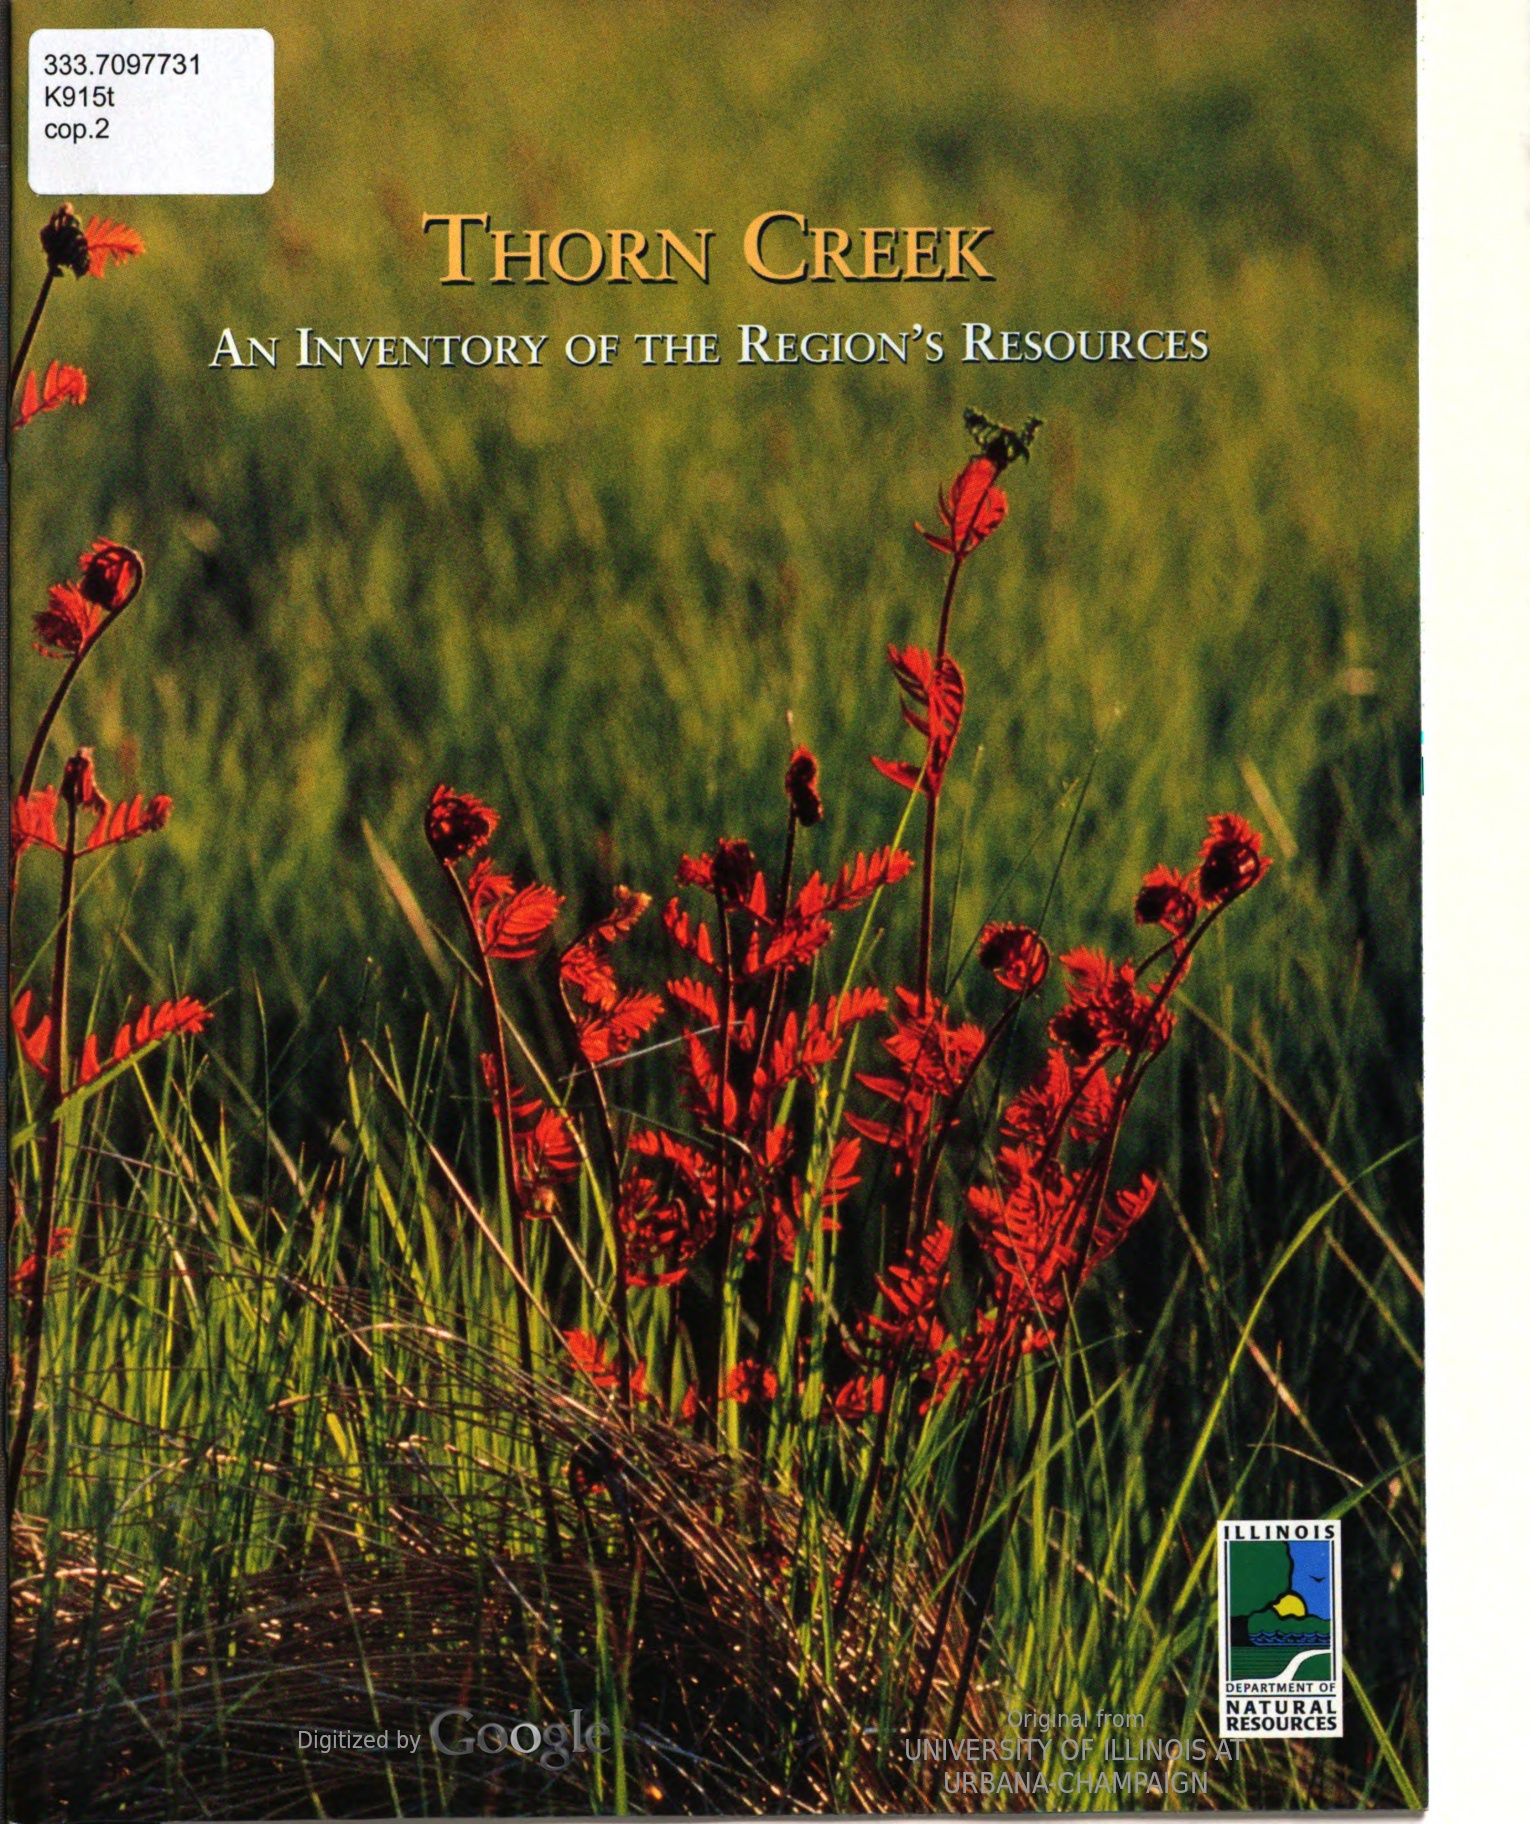 Thorn Creek : An Inventory of the Region's Resources, cover